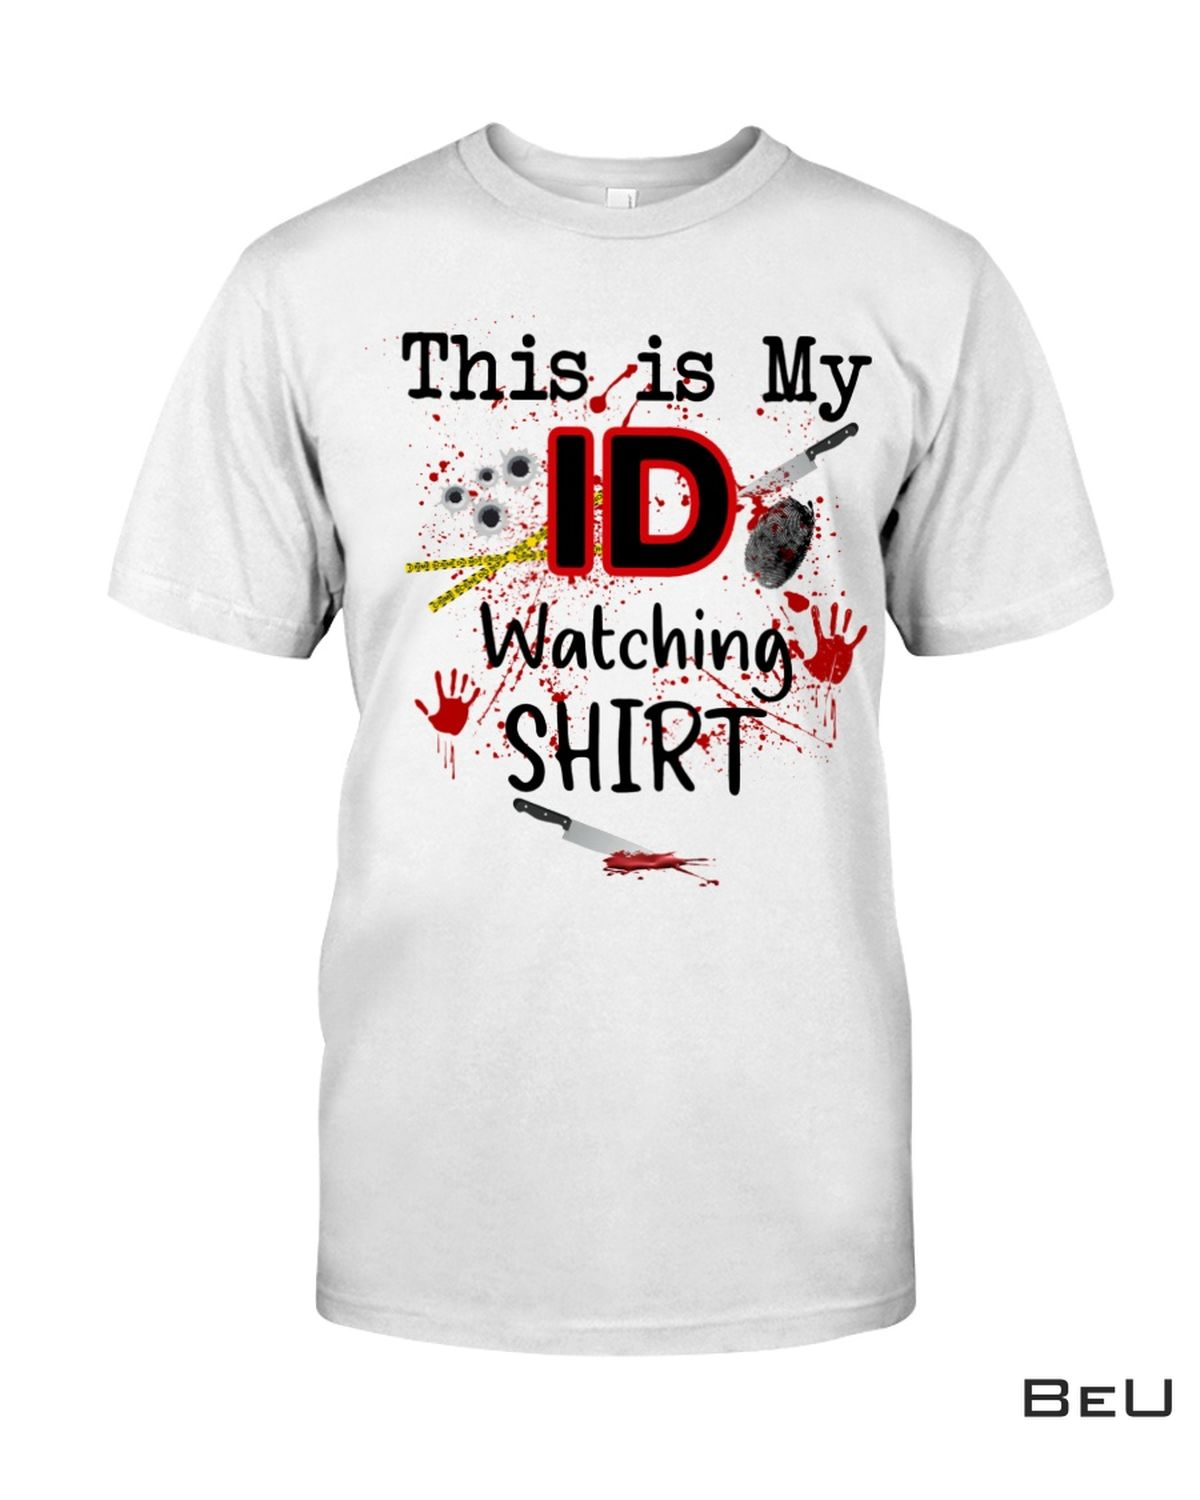 Drop Shipping This Is My Id Watching Shirt, hoodie, tank top